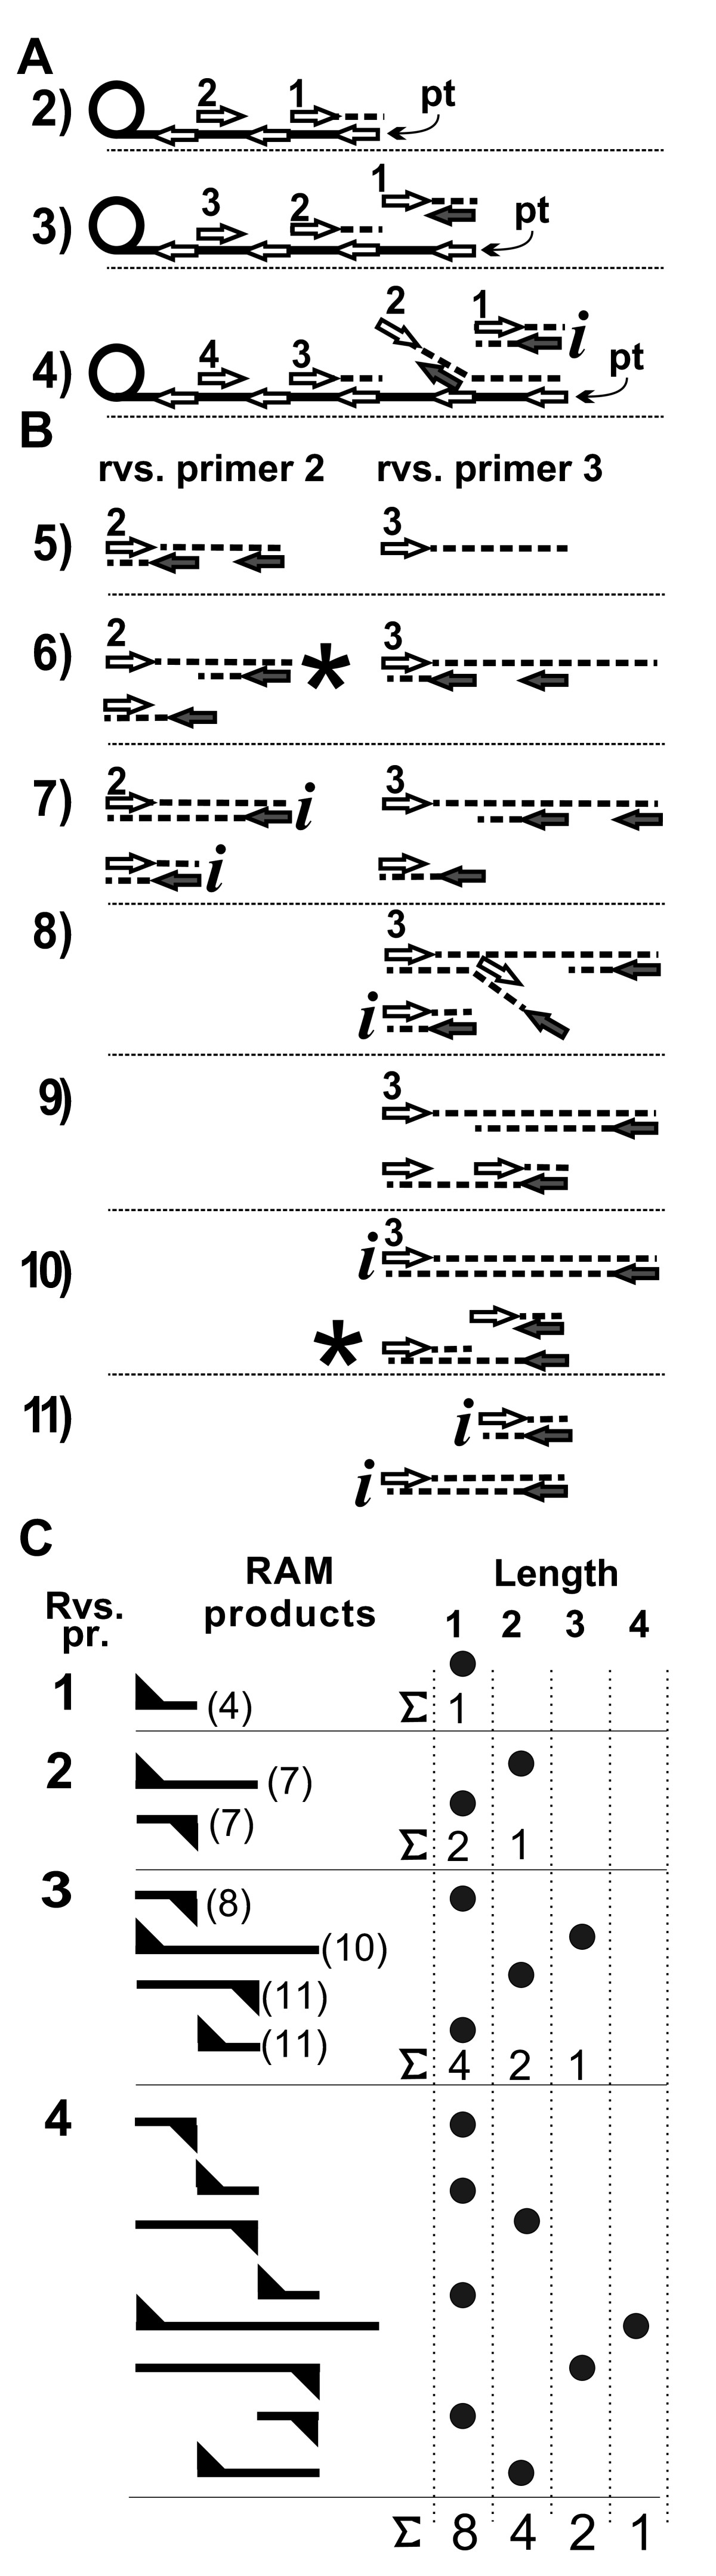 https://static-content.springer.com/image/art%3A10.1186%2F1471-2199-11-94/MediaObjects/12867_2010_Article_580_Fig3_HTML.jpg